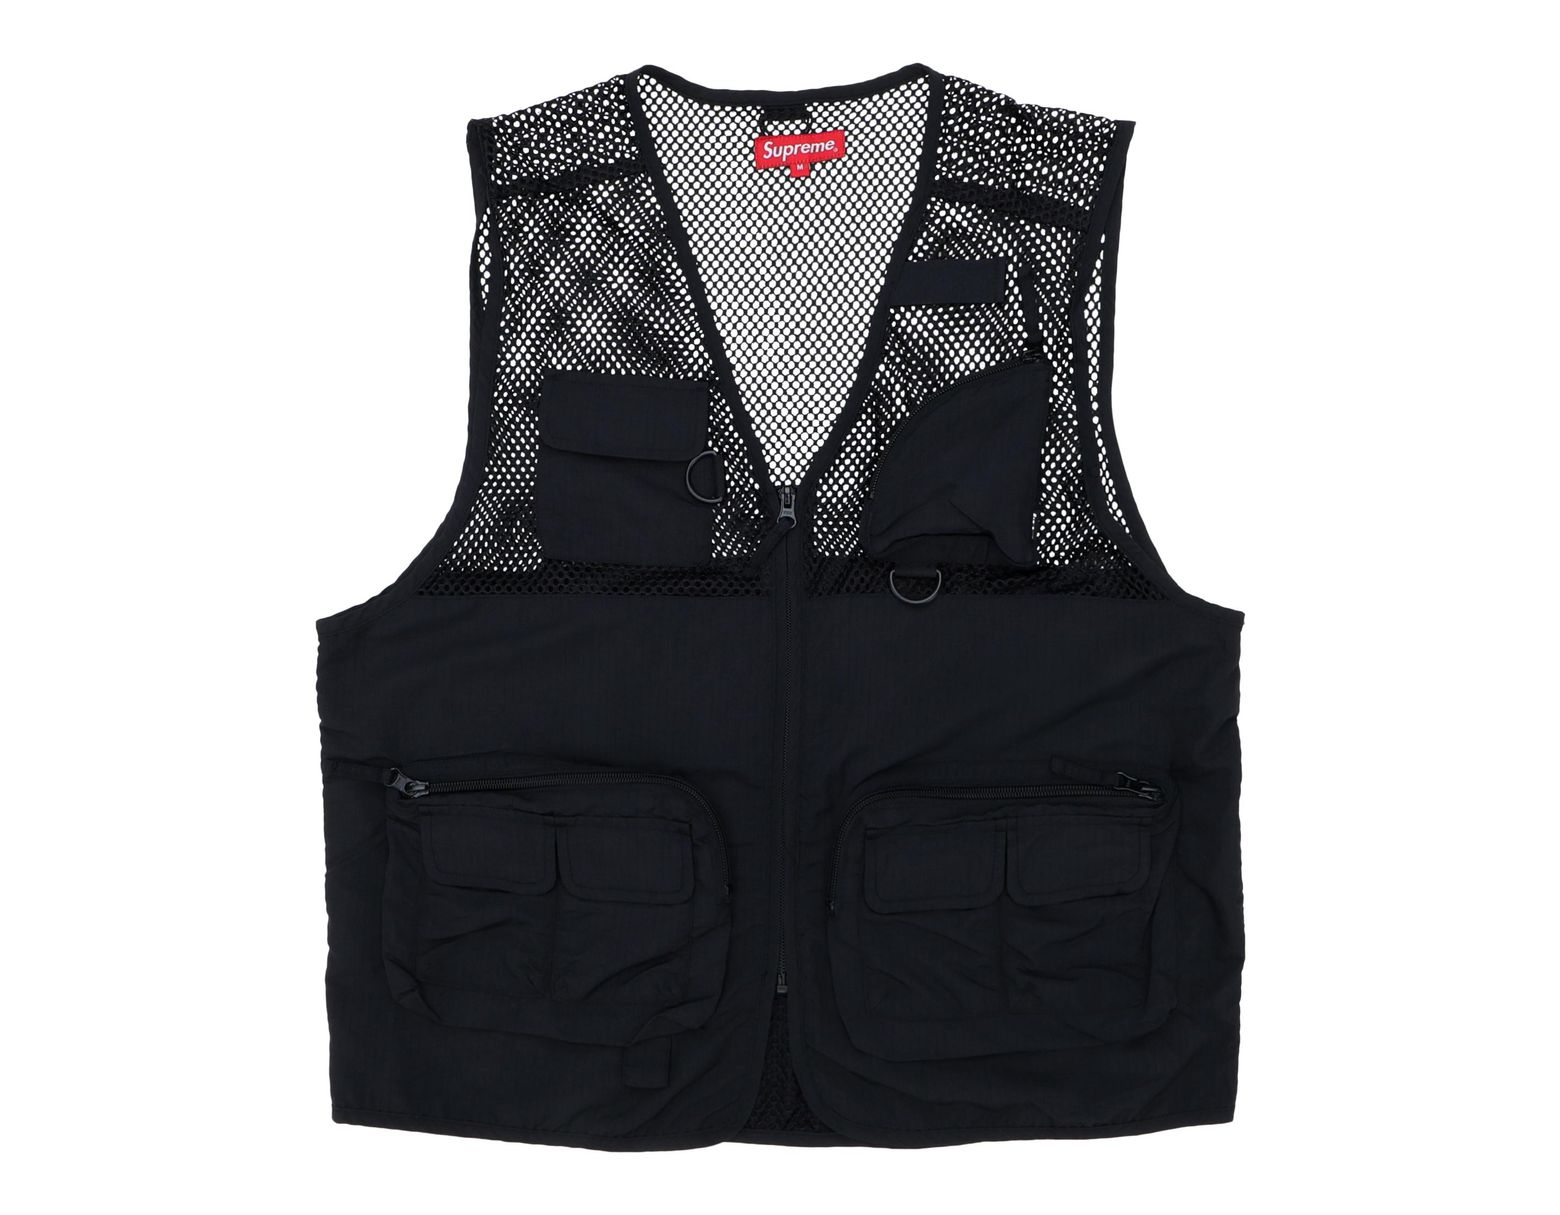 294bd2b4 Supreme Mesh Cargo Vest Black in Black for Men - Lyst